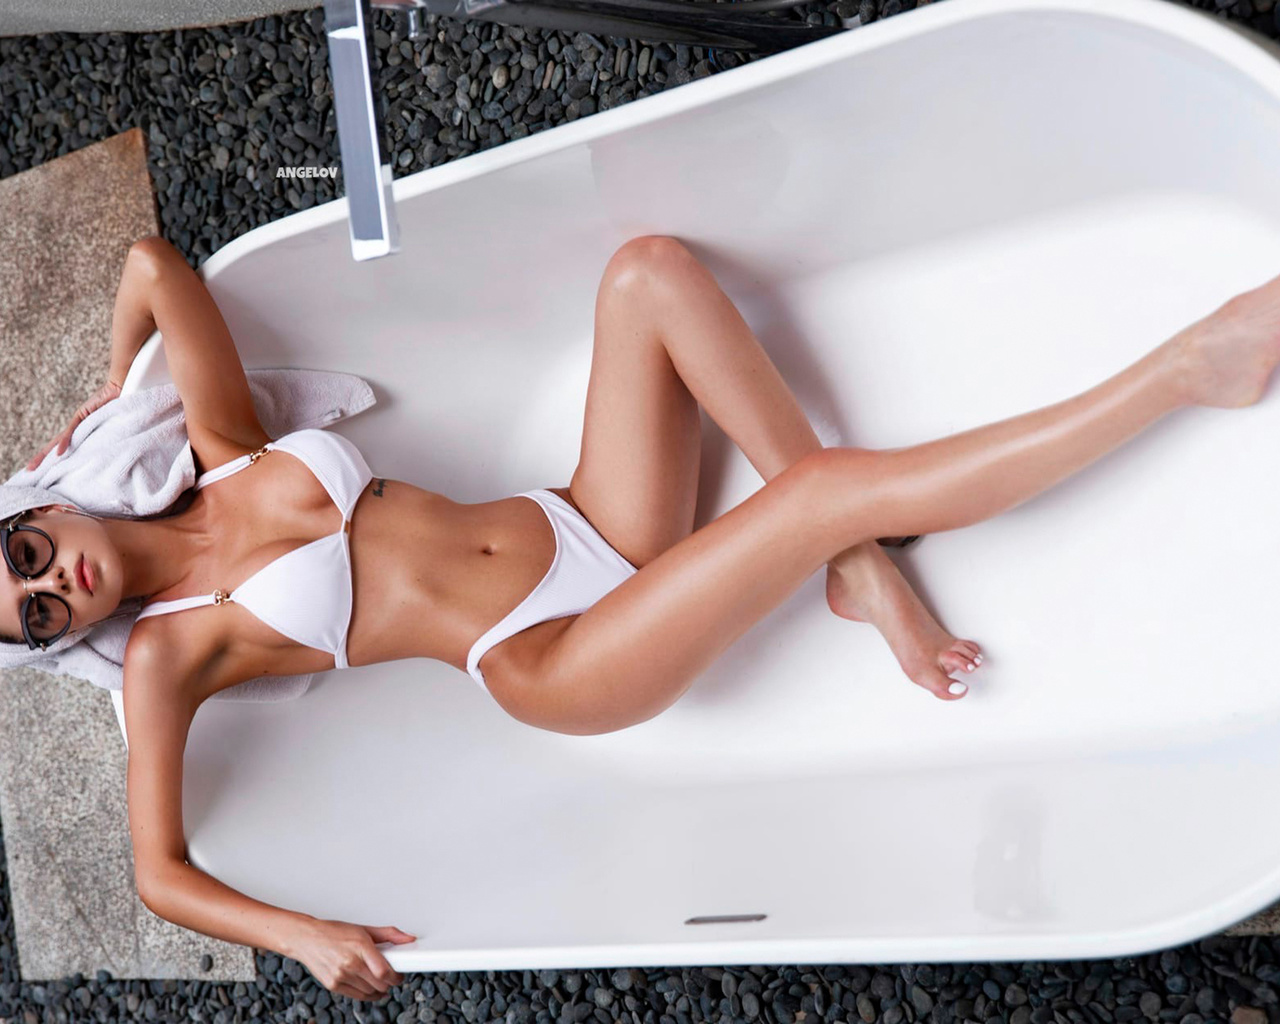 women, top view, bathtub, white bikini, belly, towel head, tattoo, brunette, armpits, women with glasses, hips, evgenii angelov, evgeny angelov, evgeniy angelov